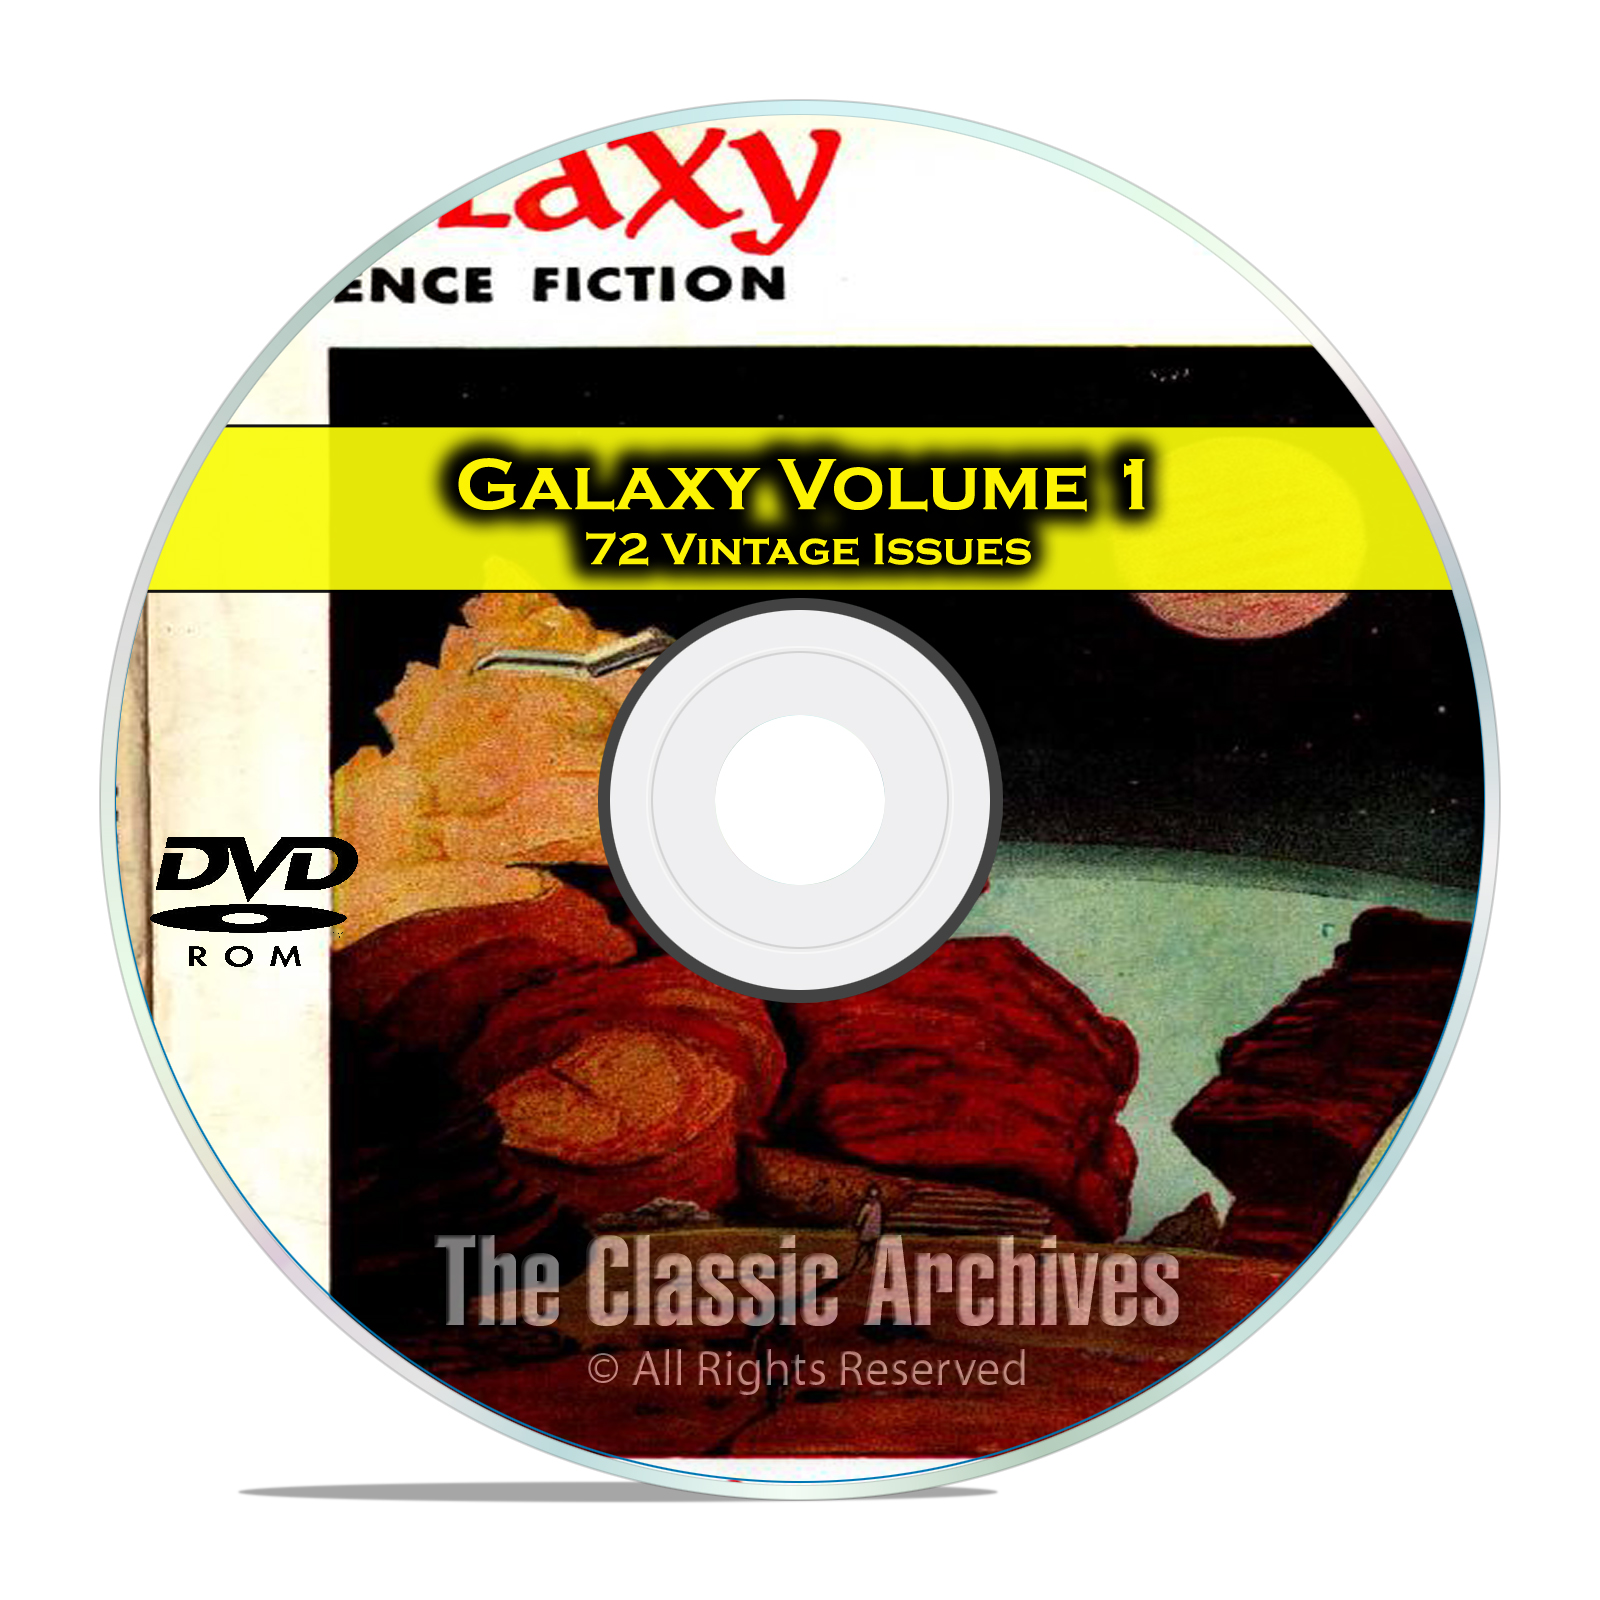 Galaxy, Vol 1, 72 Vintage Pulp Magazine, Golden Age Science Fiction DVD